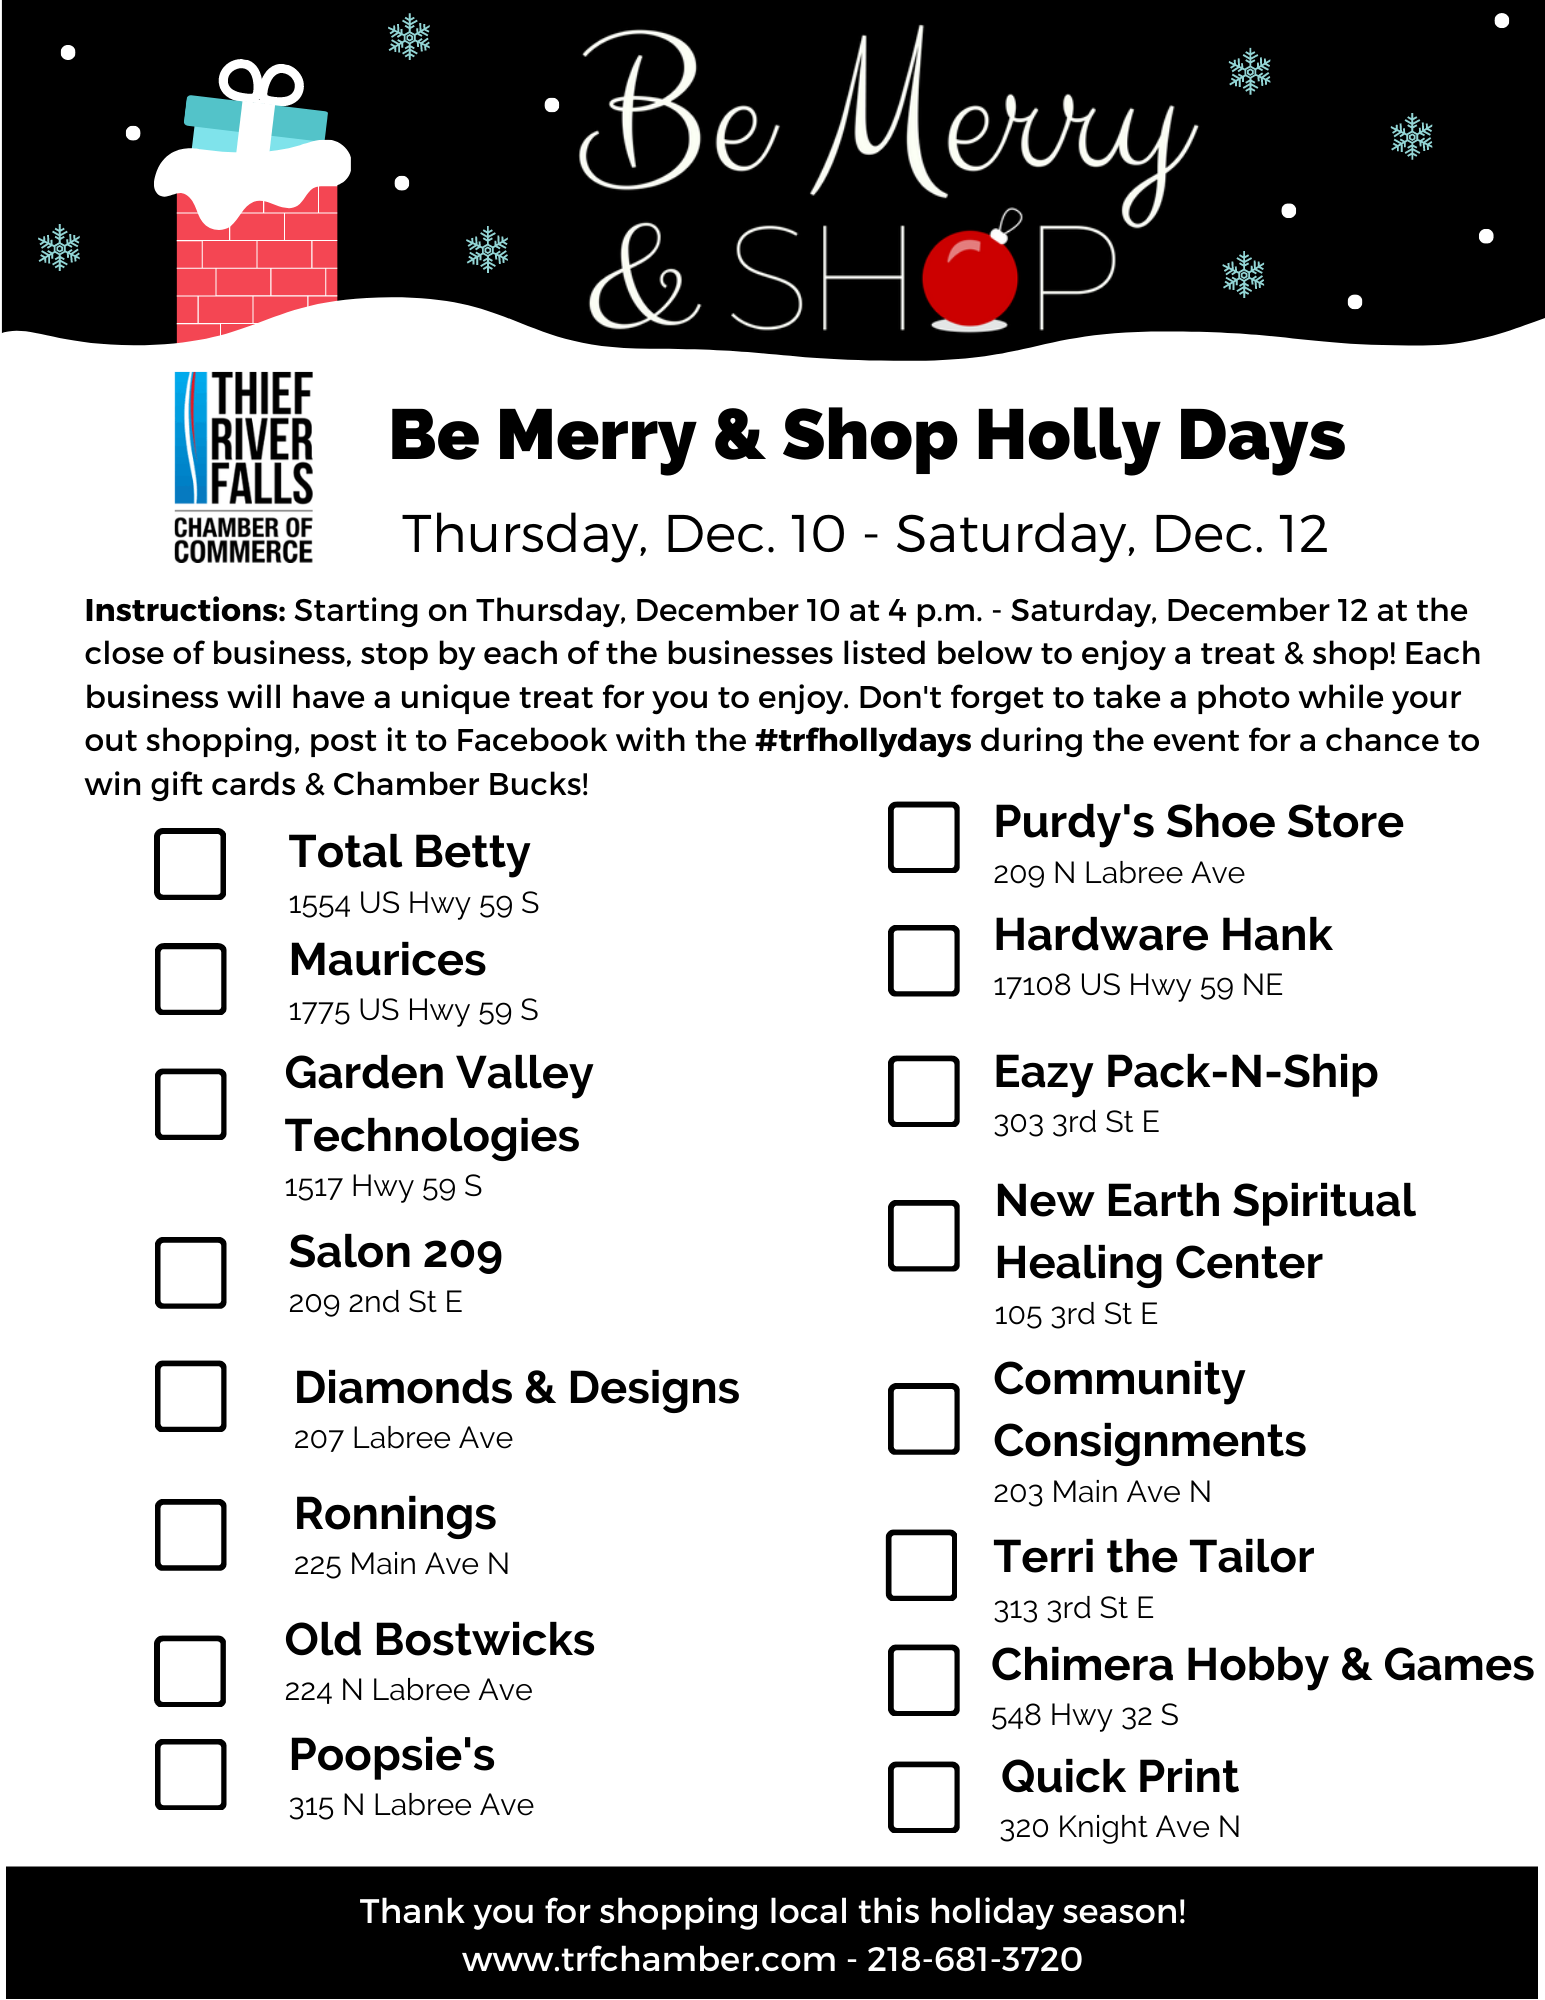 2020-Be-Merry-and-Shop-Checklist.png